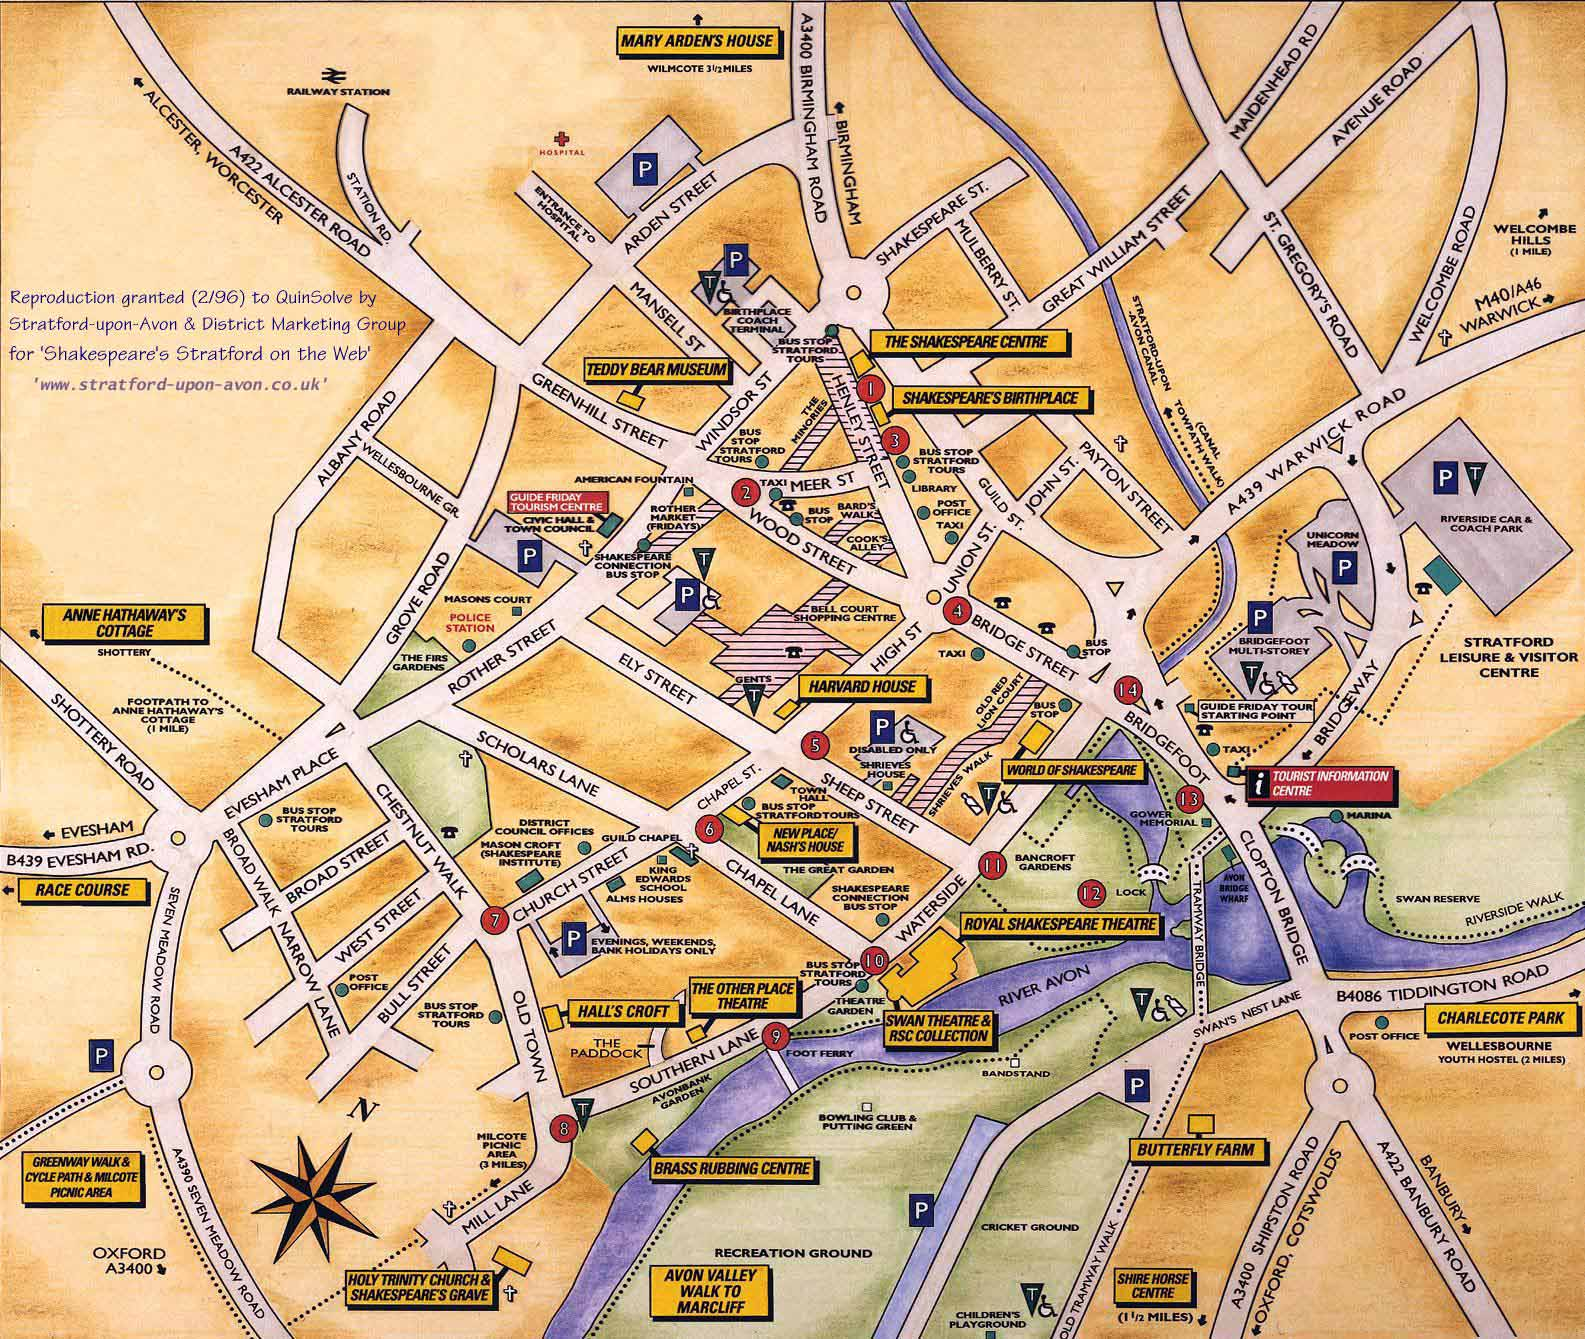 detailed sightseeing map of stratford upon avon